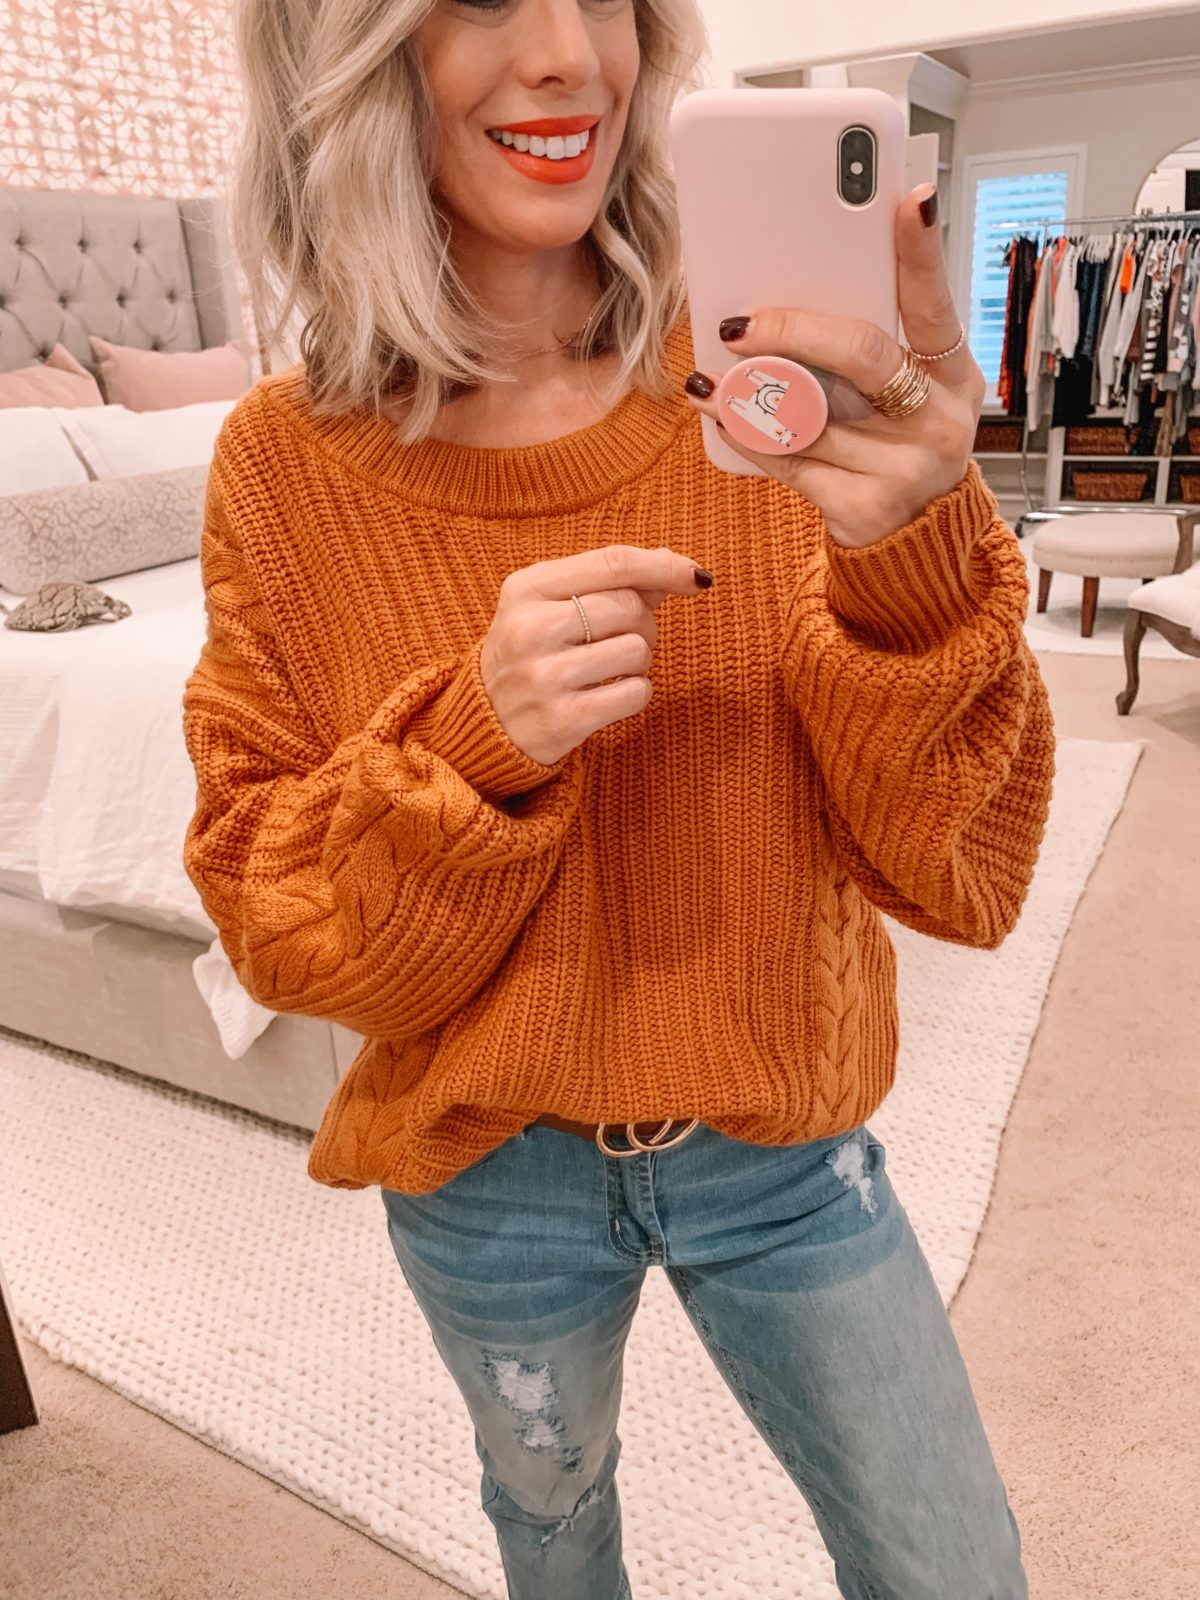 Amazon fashion haul, sweater and jeans